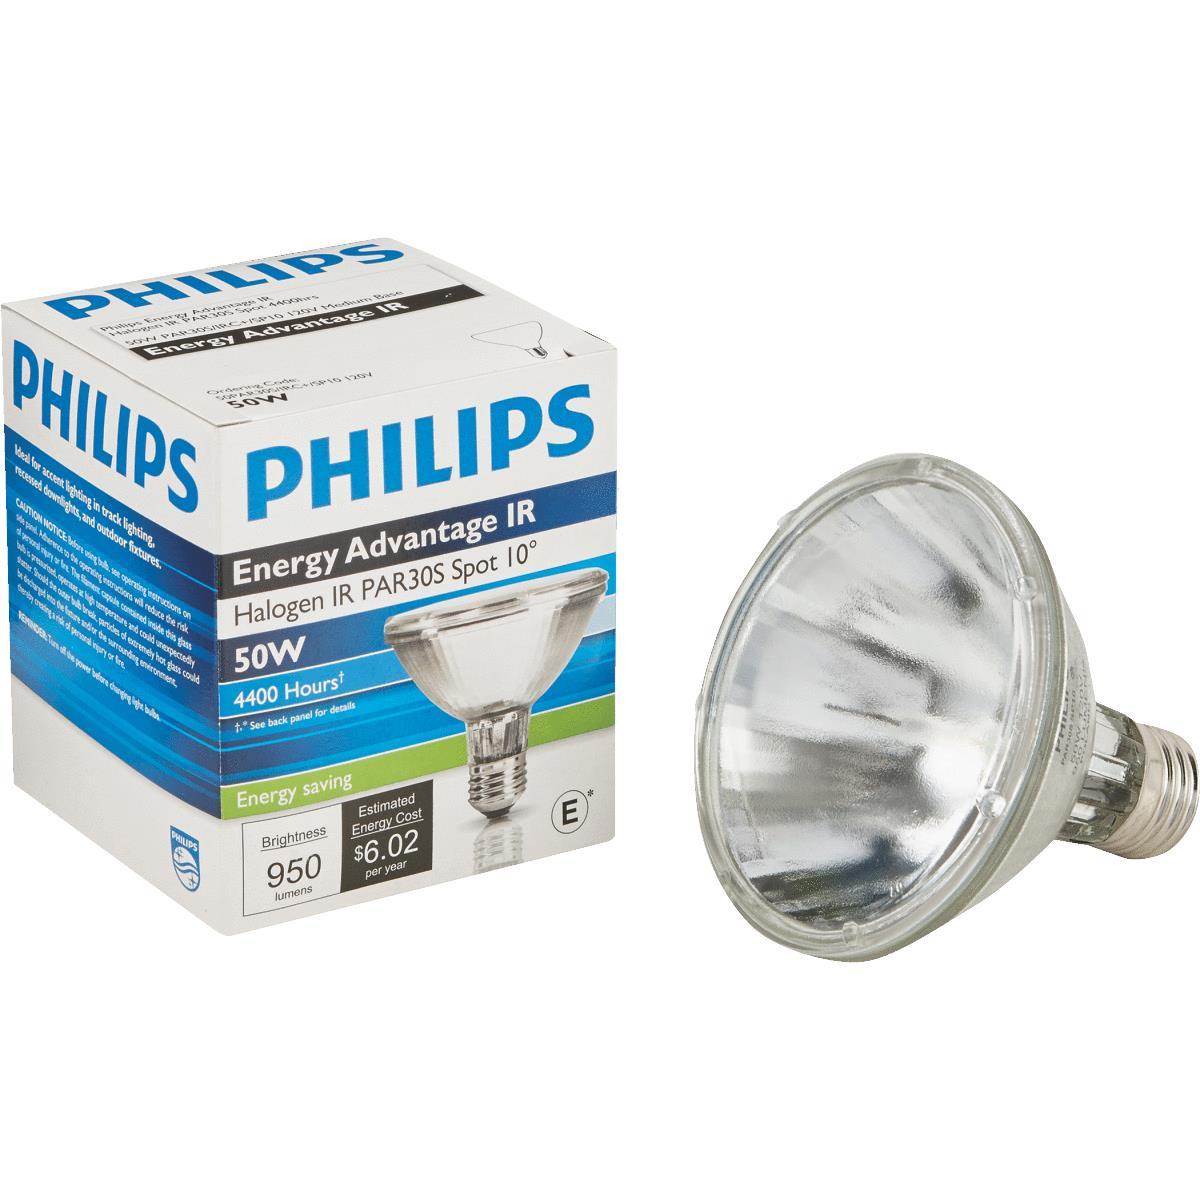 Halogen Spotlight Bulbs Philips Energy Advantage Ir Par30 Halogen Spotlight Light Bulb